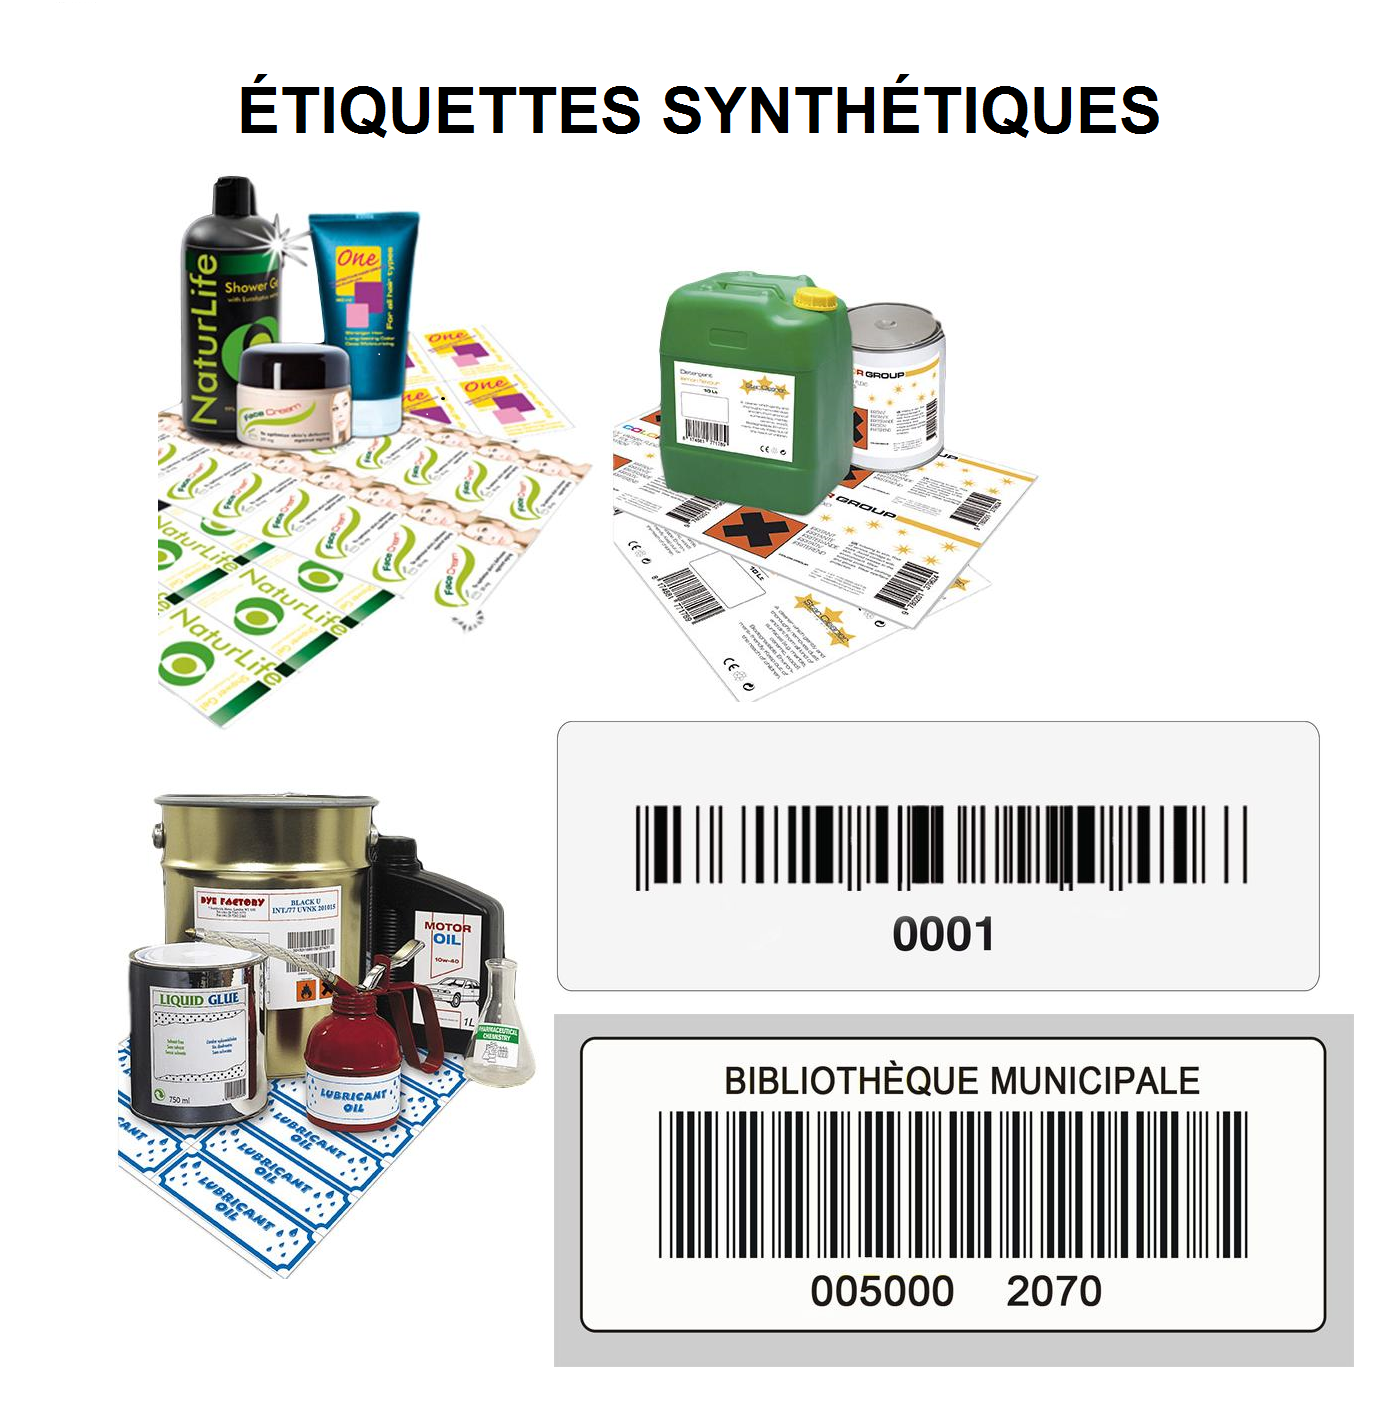 ETIQUETTES_SYNTHETIQUES_BLANCHE_planches_detiquettes_synthetique_pour_imprimante_etiquette_plastique,_plastifiee_resistante,_indechirable_brillante_ou_mat